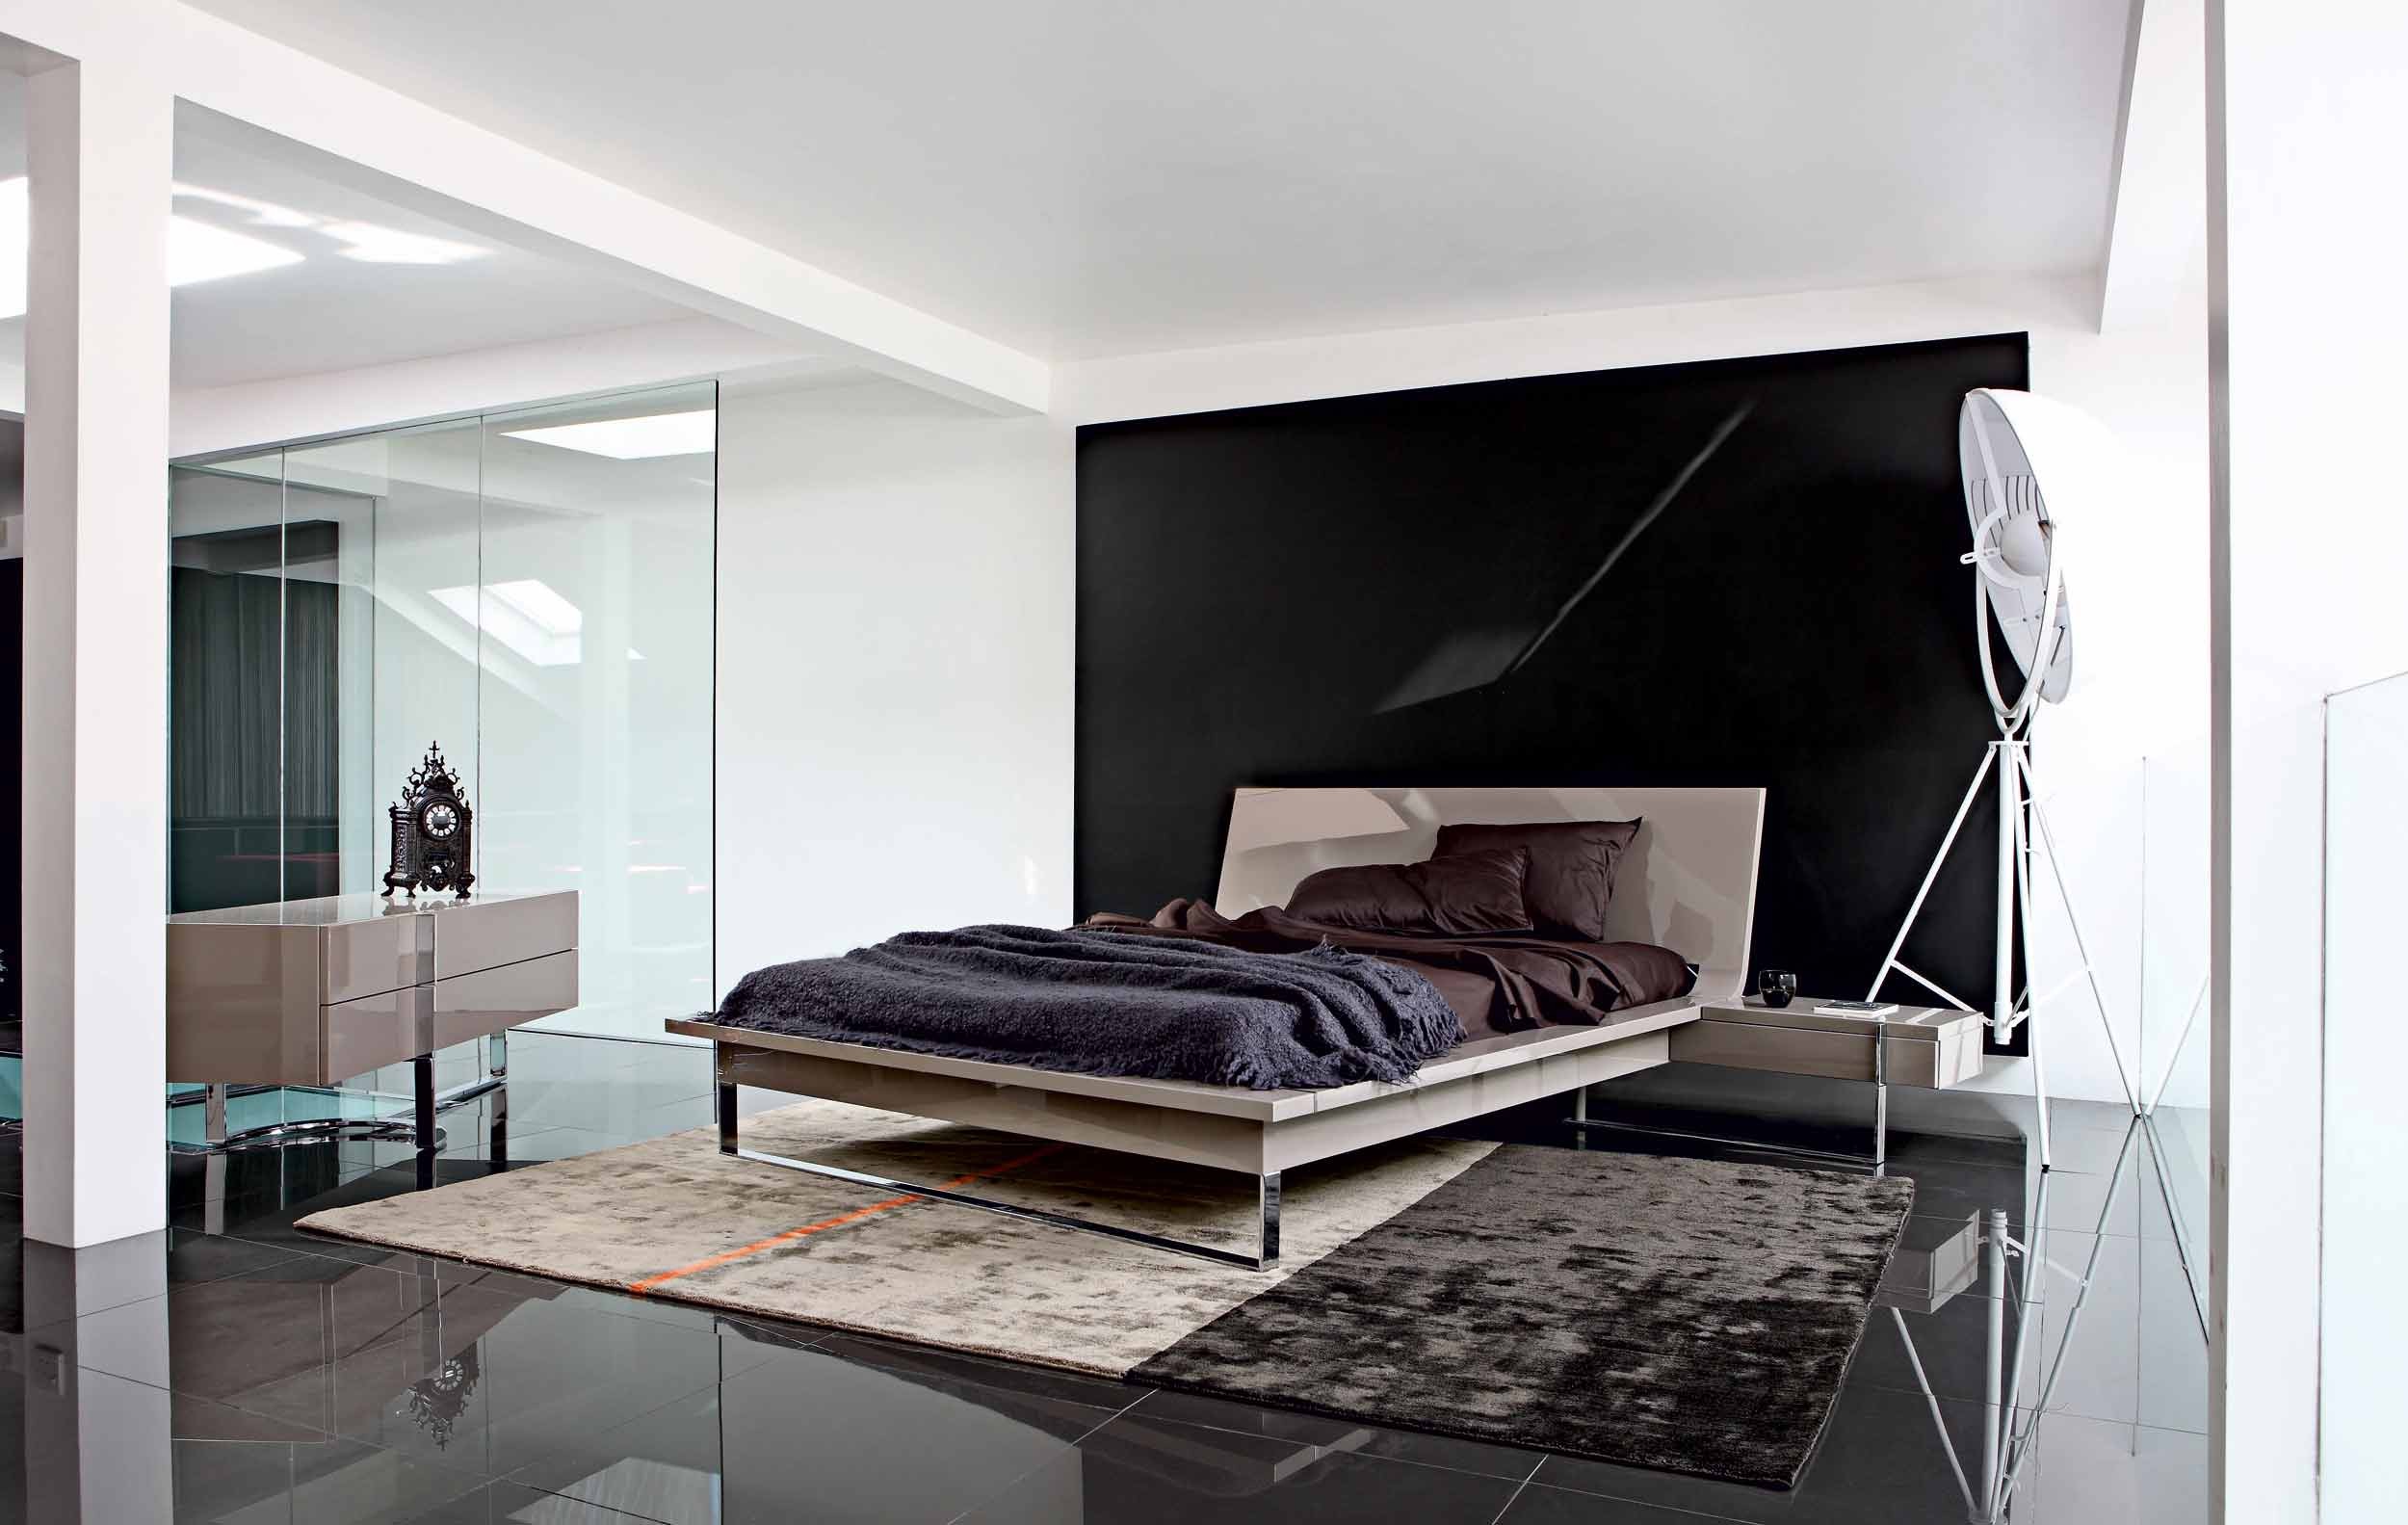 Minimalist bedroom interior design ideas for Bed minimalist design